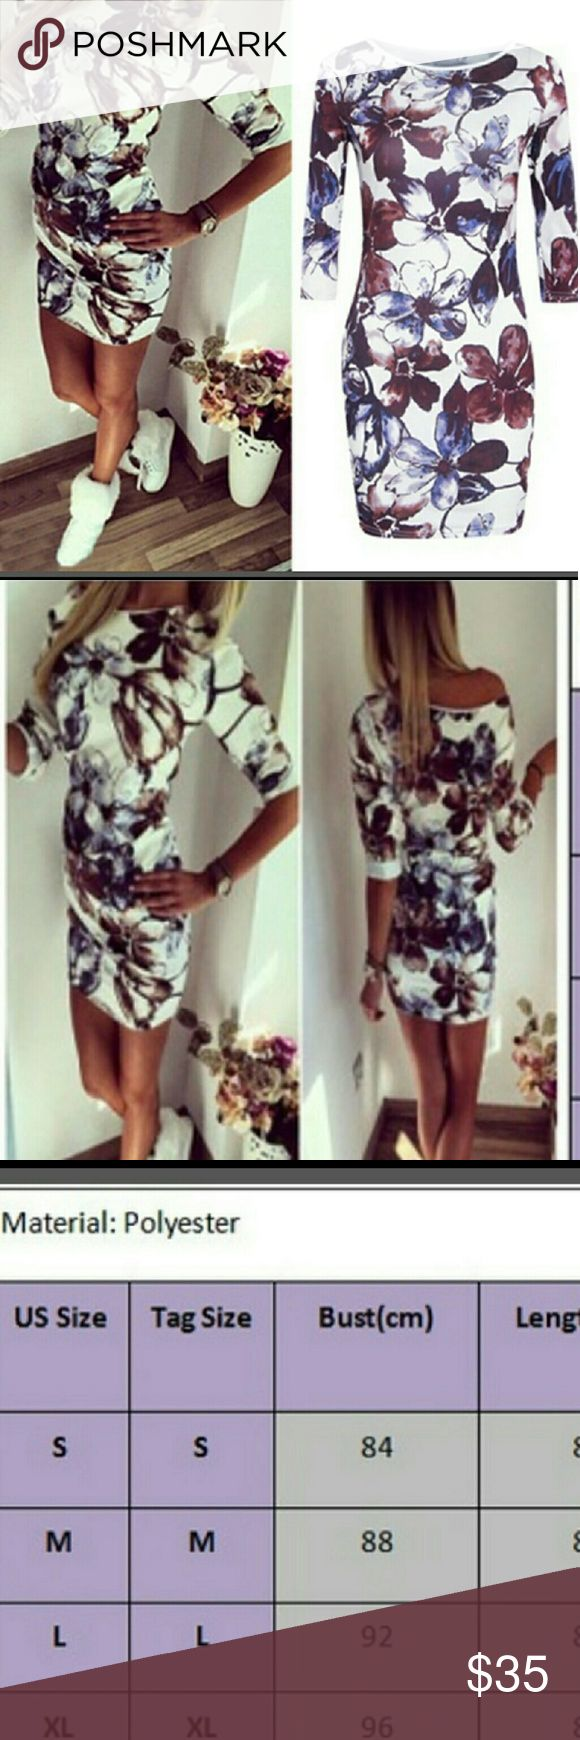 Floral print blush bodycon  dress mini Absolutely trending run errands or go night club with this piece 100 polyester Please take a look at the size chart before choosing the Right size Runs short. Dresses Mini